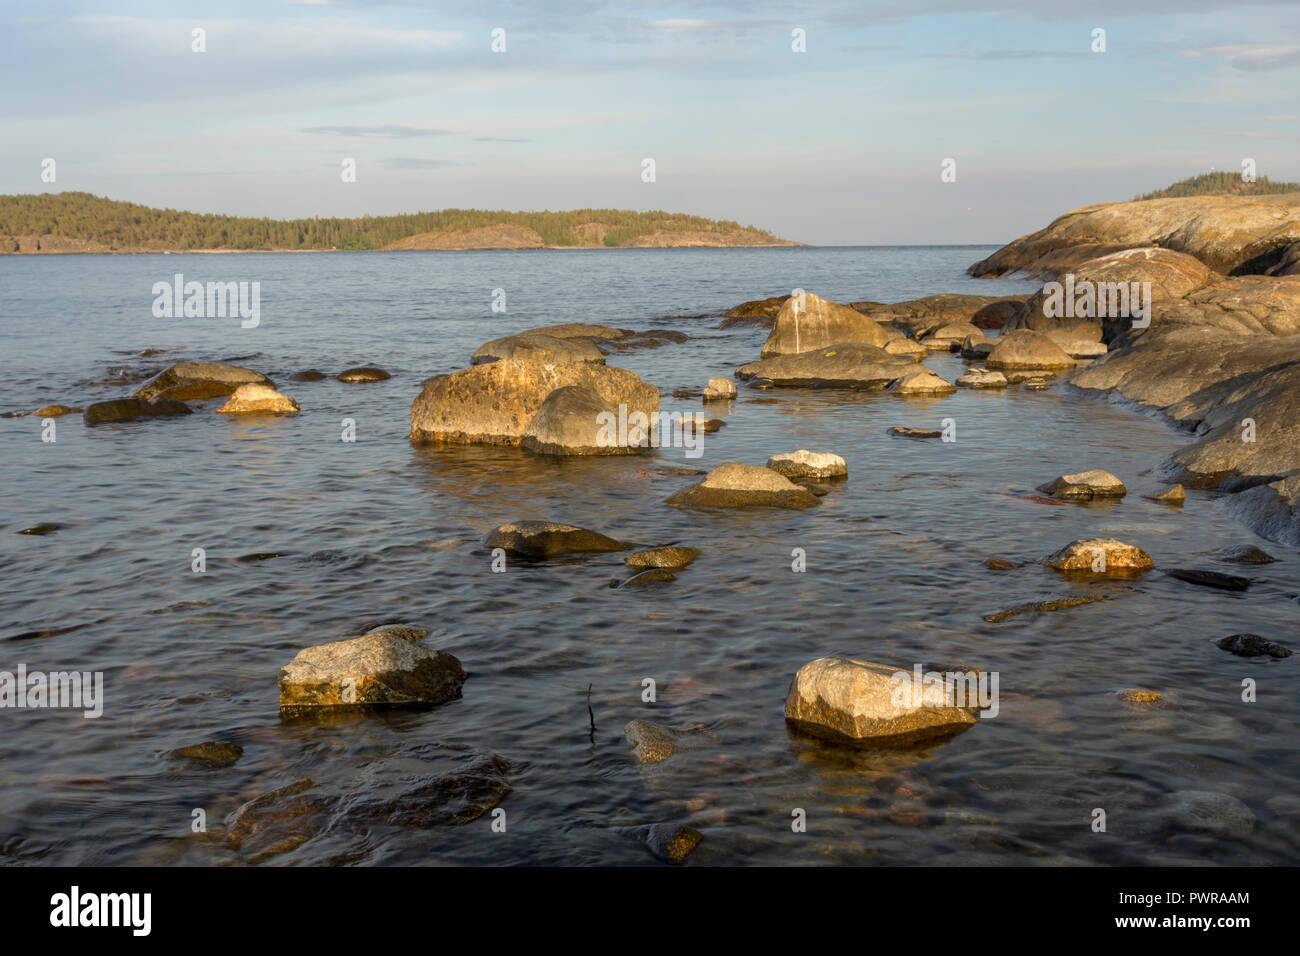 Rocks in seashore in sunset in foreground and mountain with forest and a blue sky in background, picture from High Coast Area in Northern Sweden. - Stock Image